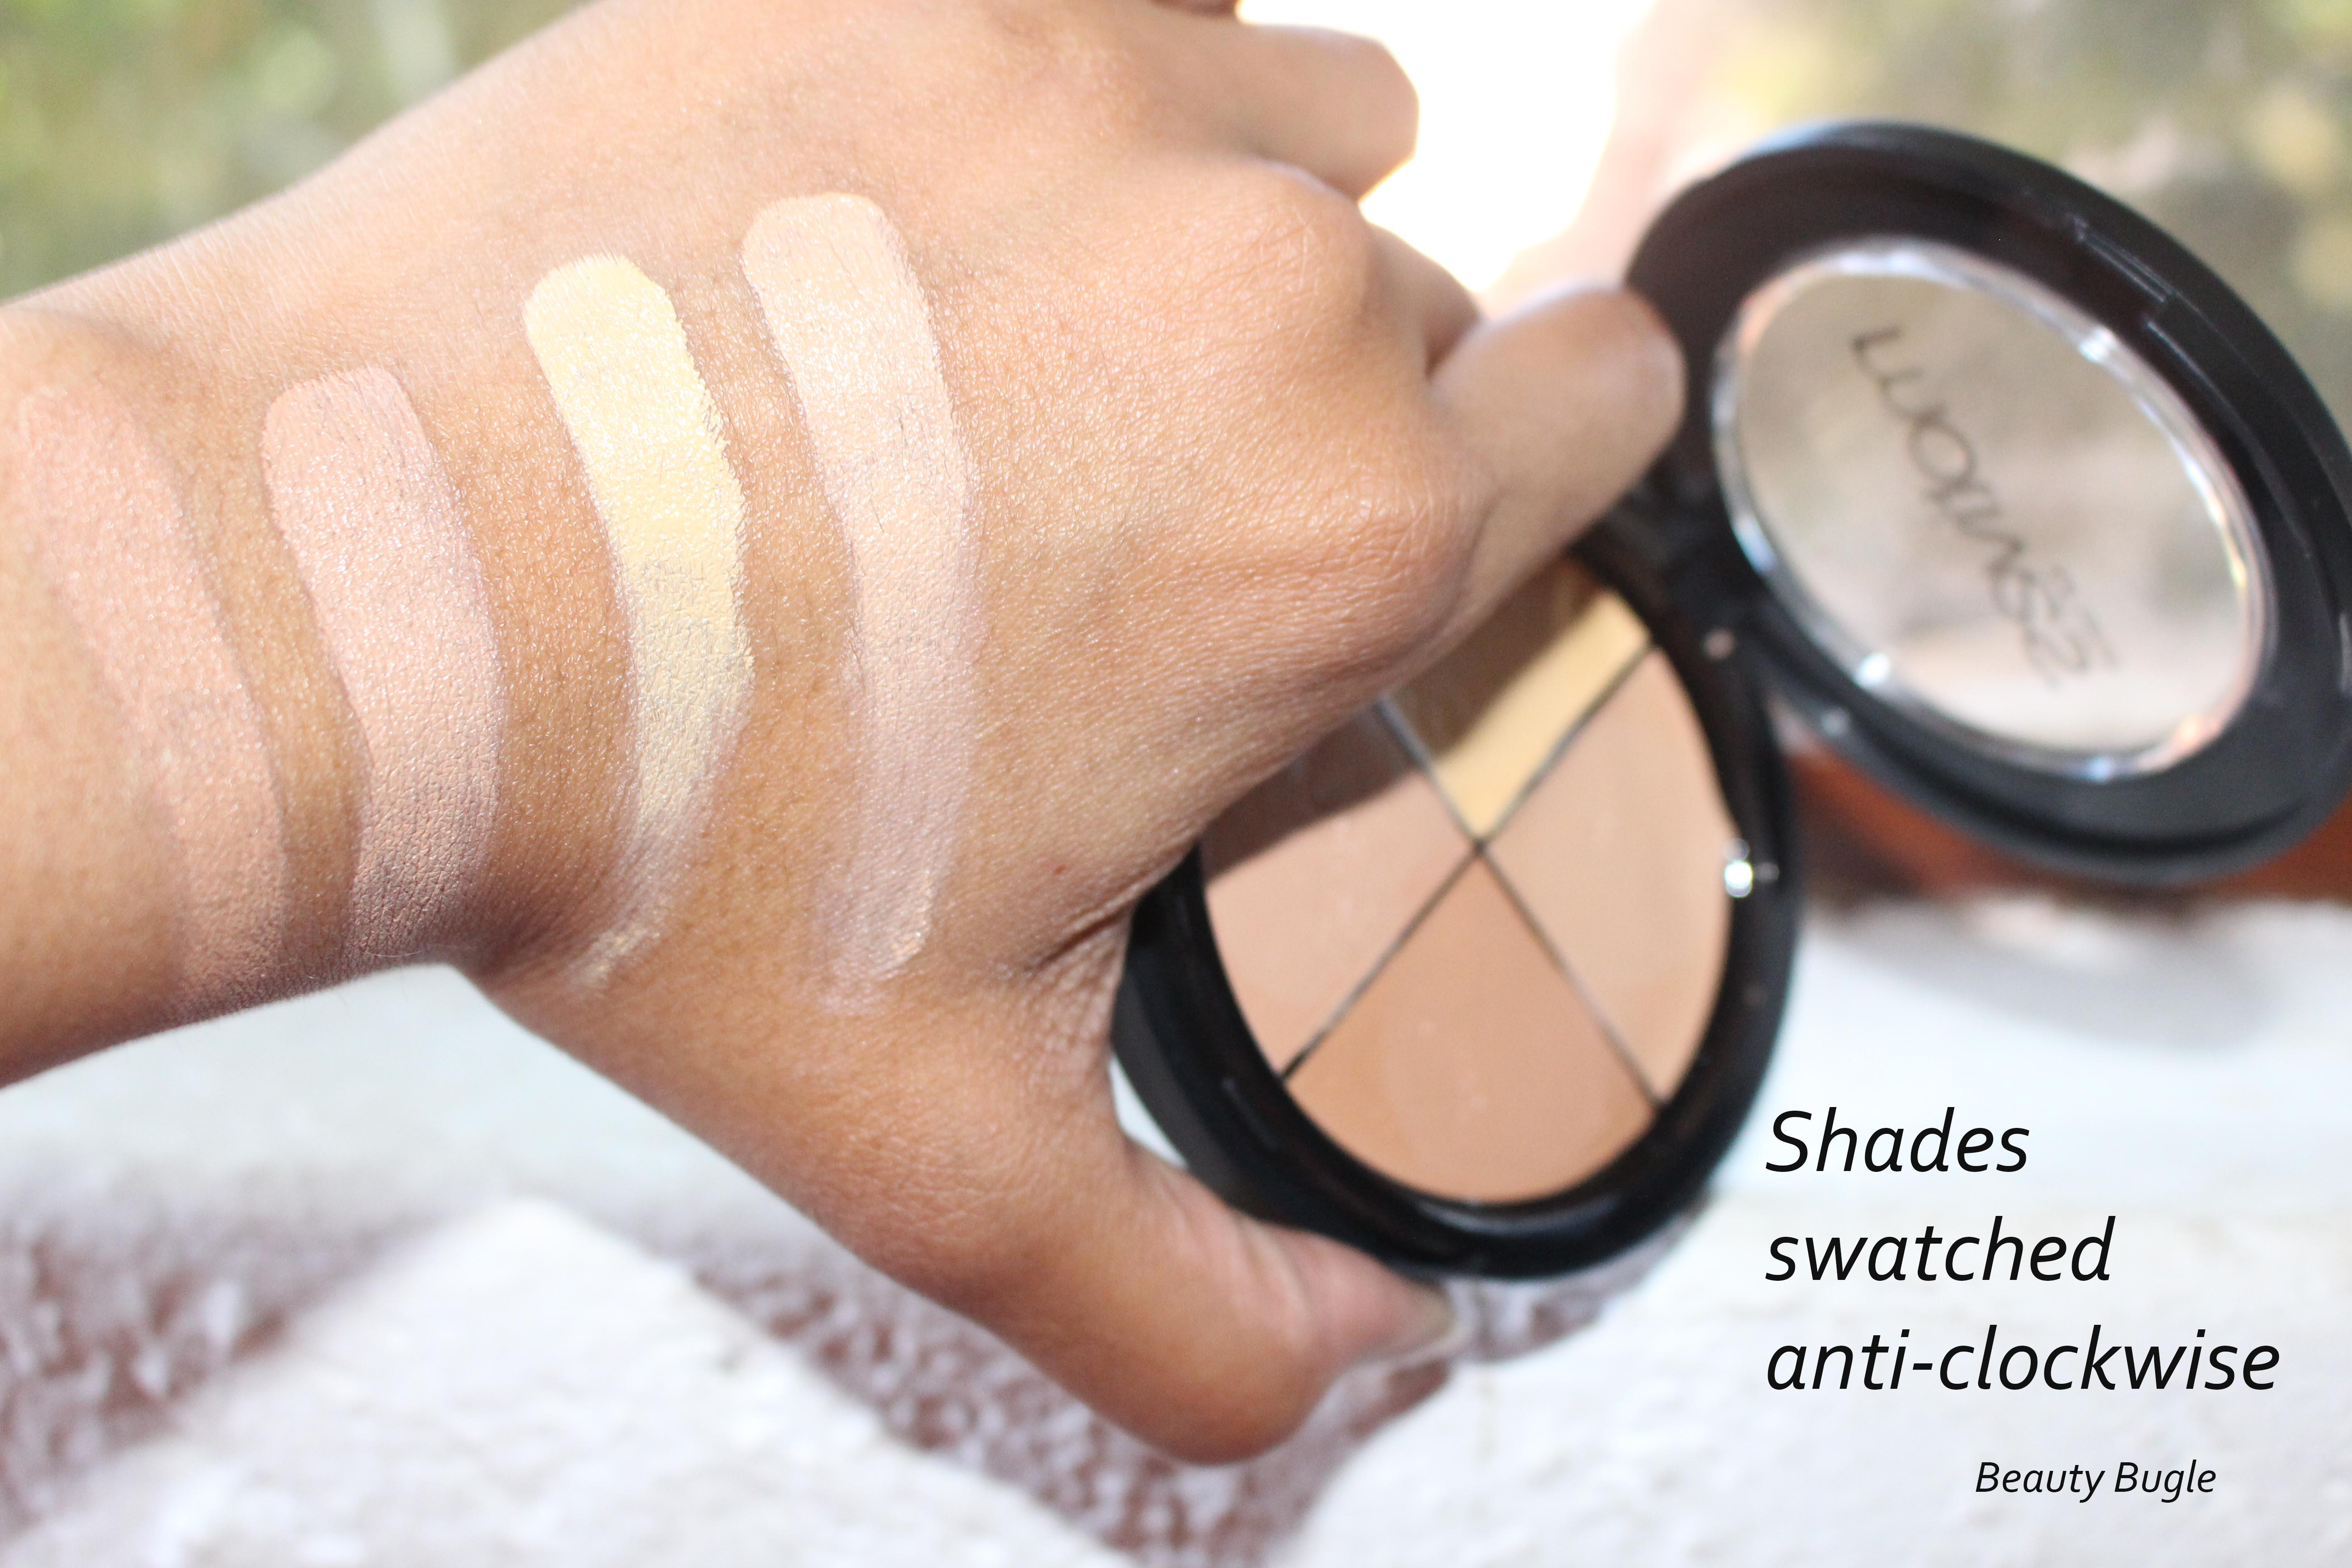 The Motives Perfection Quad in Medium doesn't offer the depth of contour colours. The deepest shade is not dark enough to sculpt the cheekbones.